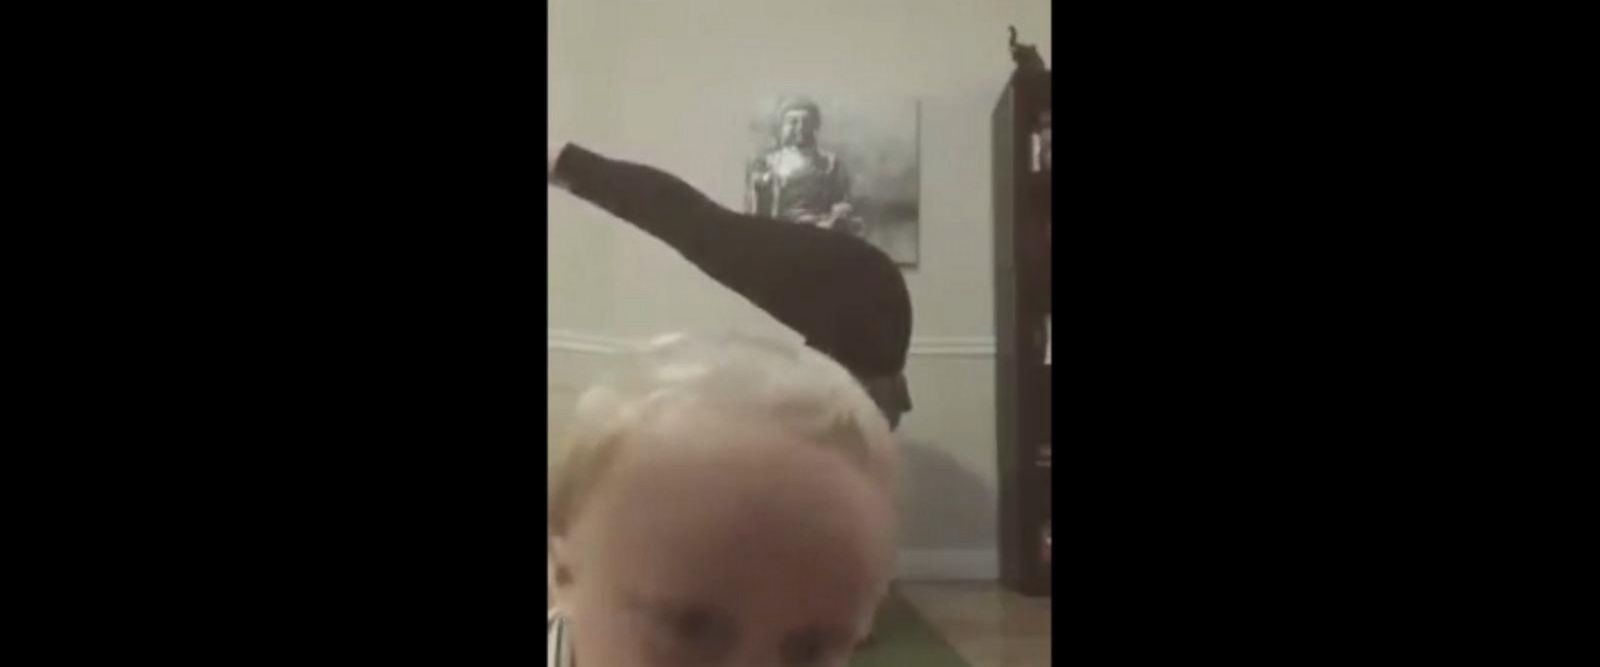 VIDEO: Toddler brilliantly photo bombs his mom's yoga headstand